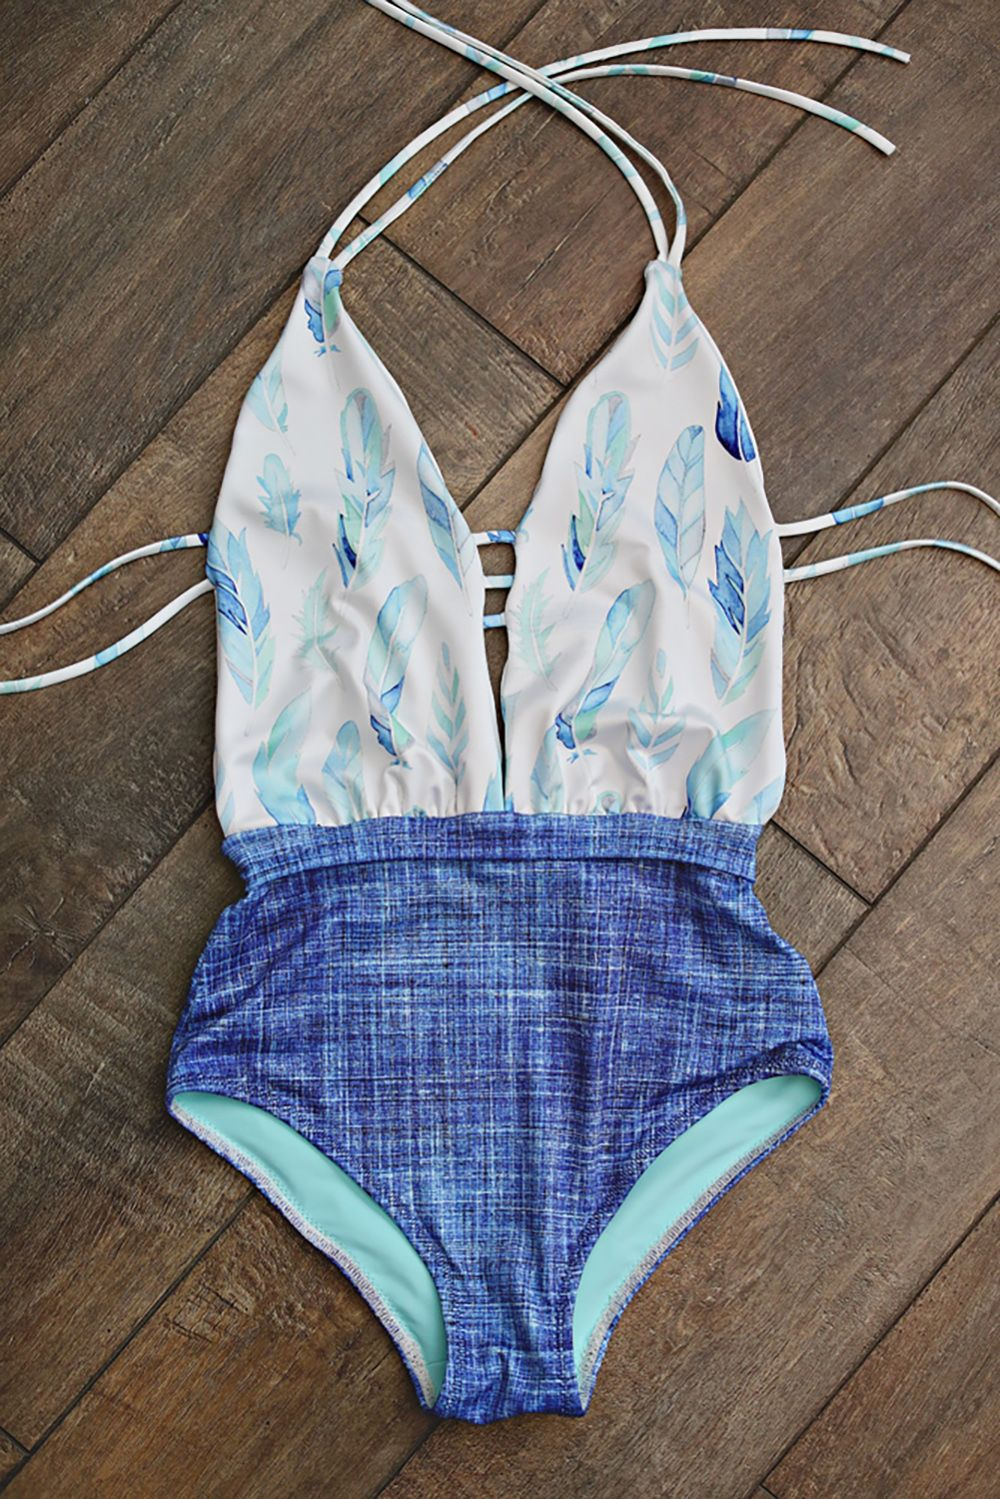 Custom Printed Swimsuit Made With Spoonflowers Sport Lycra Keep